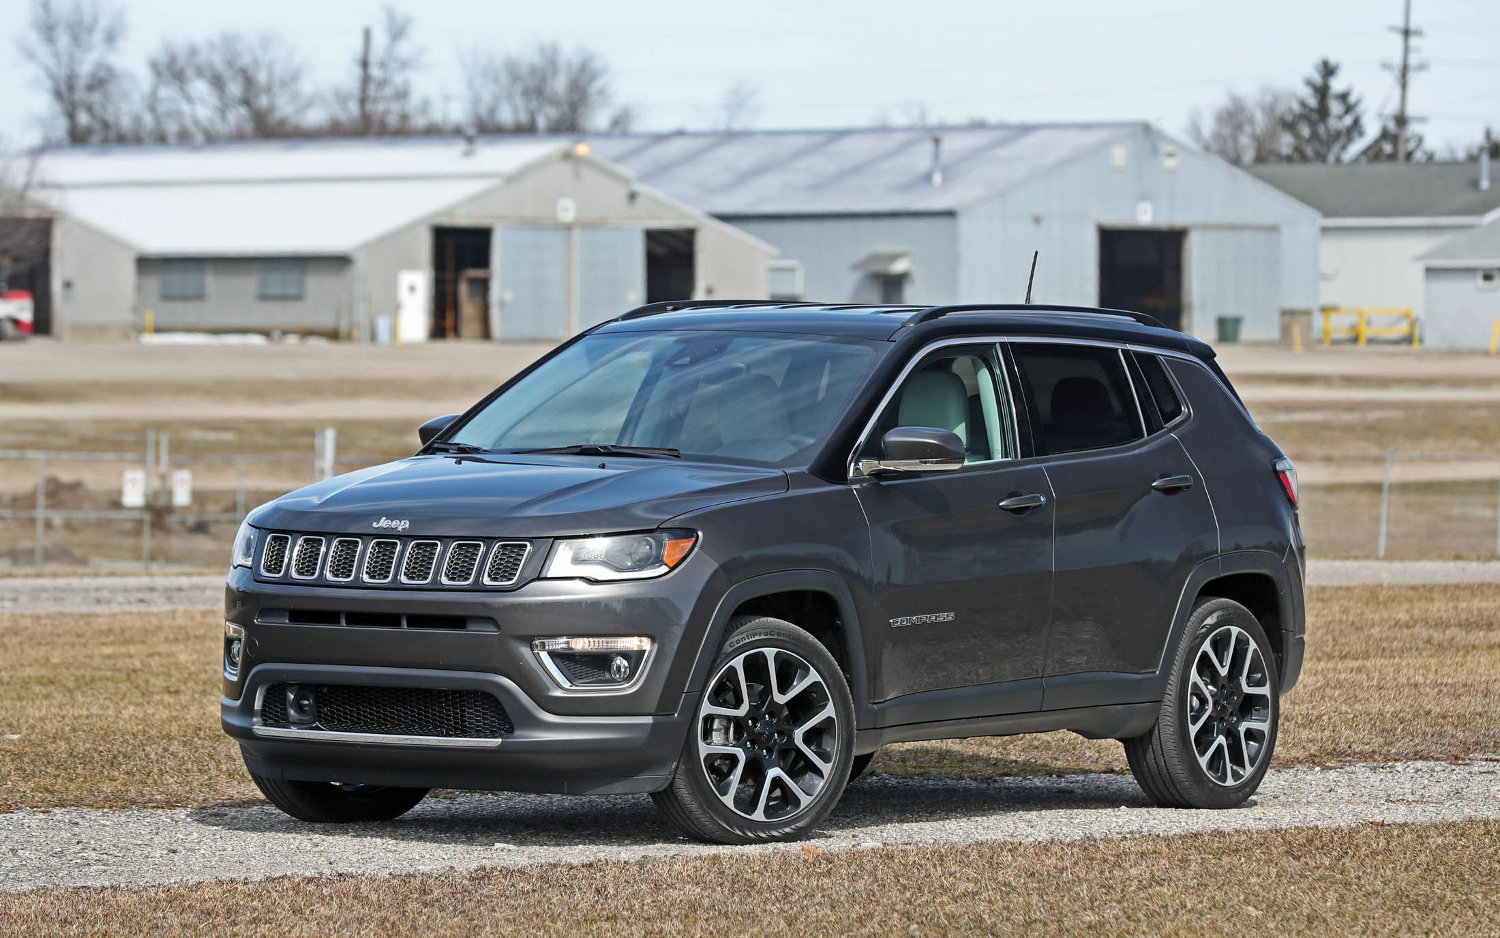 M Dsc in addition Angle Front Jeep  pass Sport additionally Jeep Cherokee Trailhawk Off Road in addition Ab D C B Z further Jeep  pass. on jeep grand cherokee trailhawk